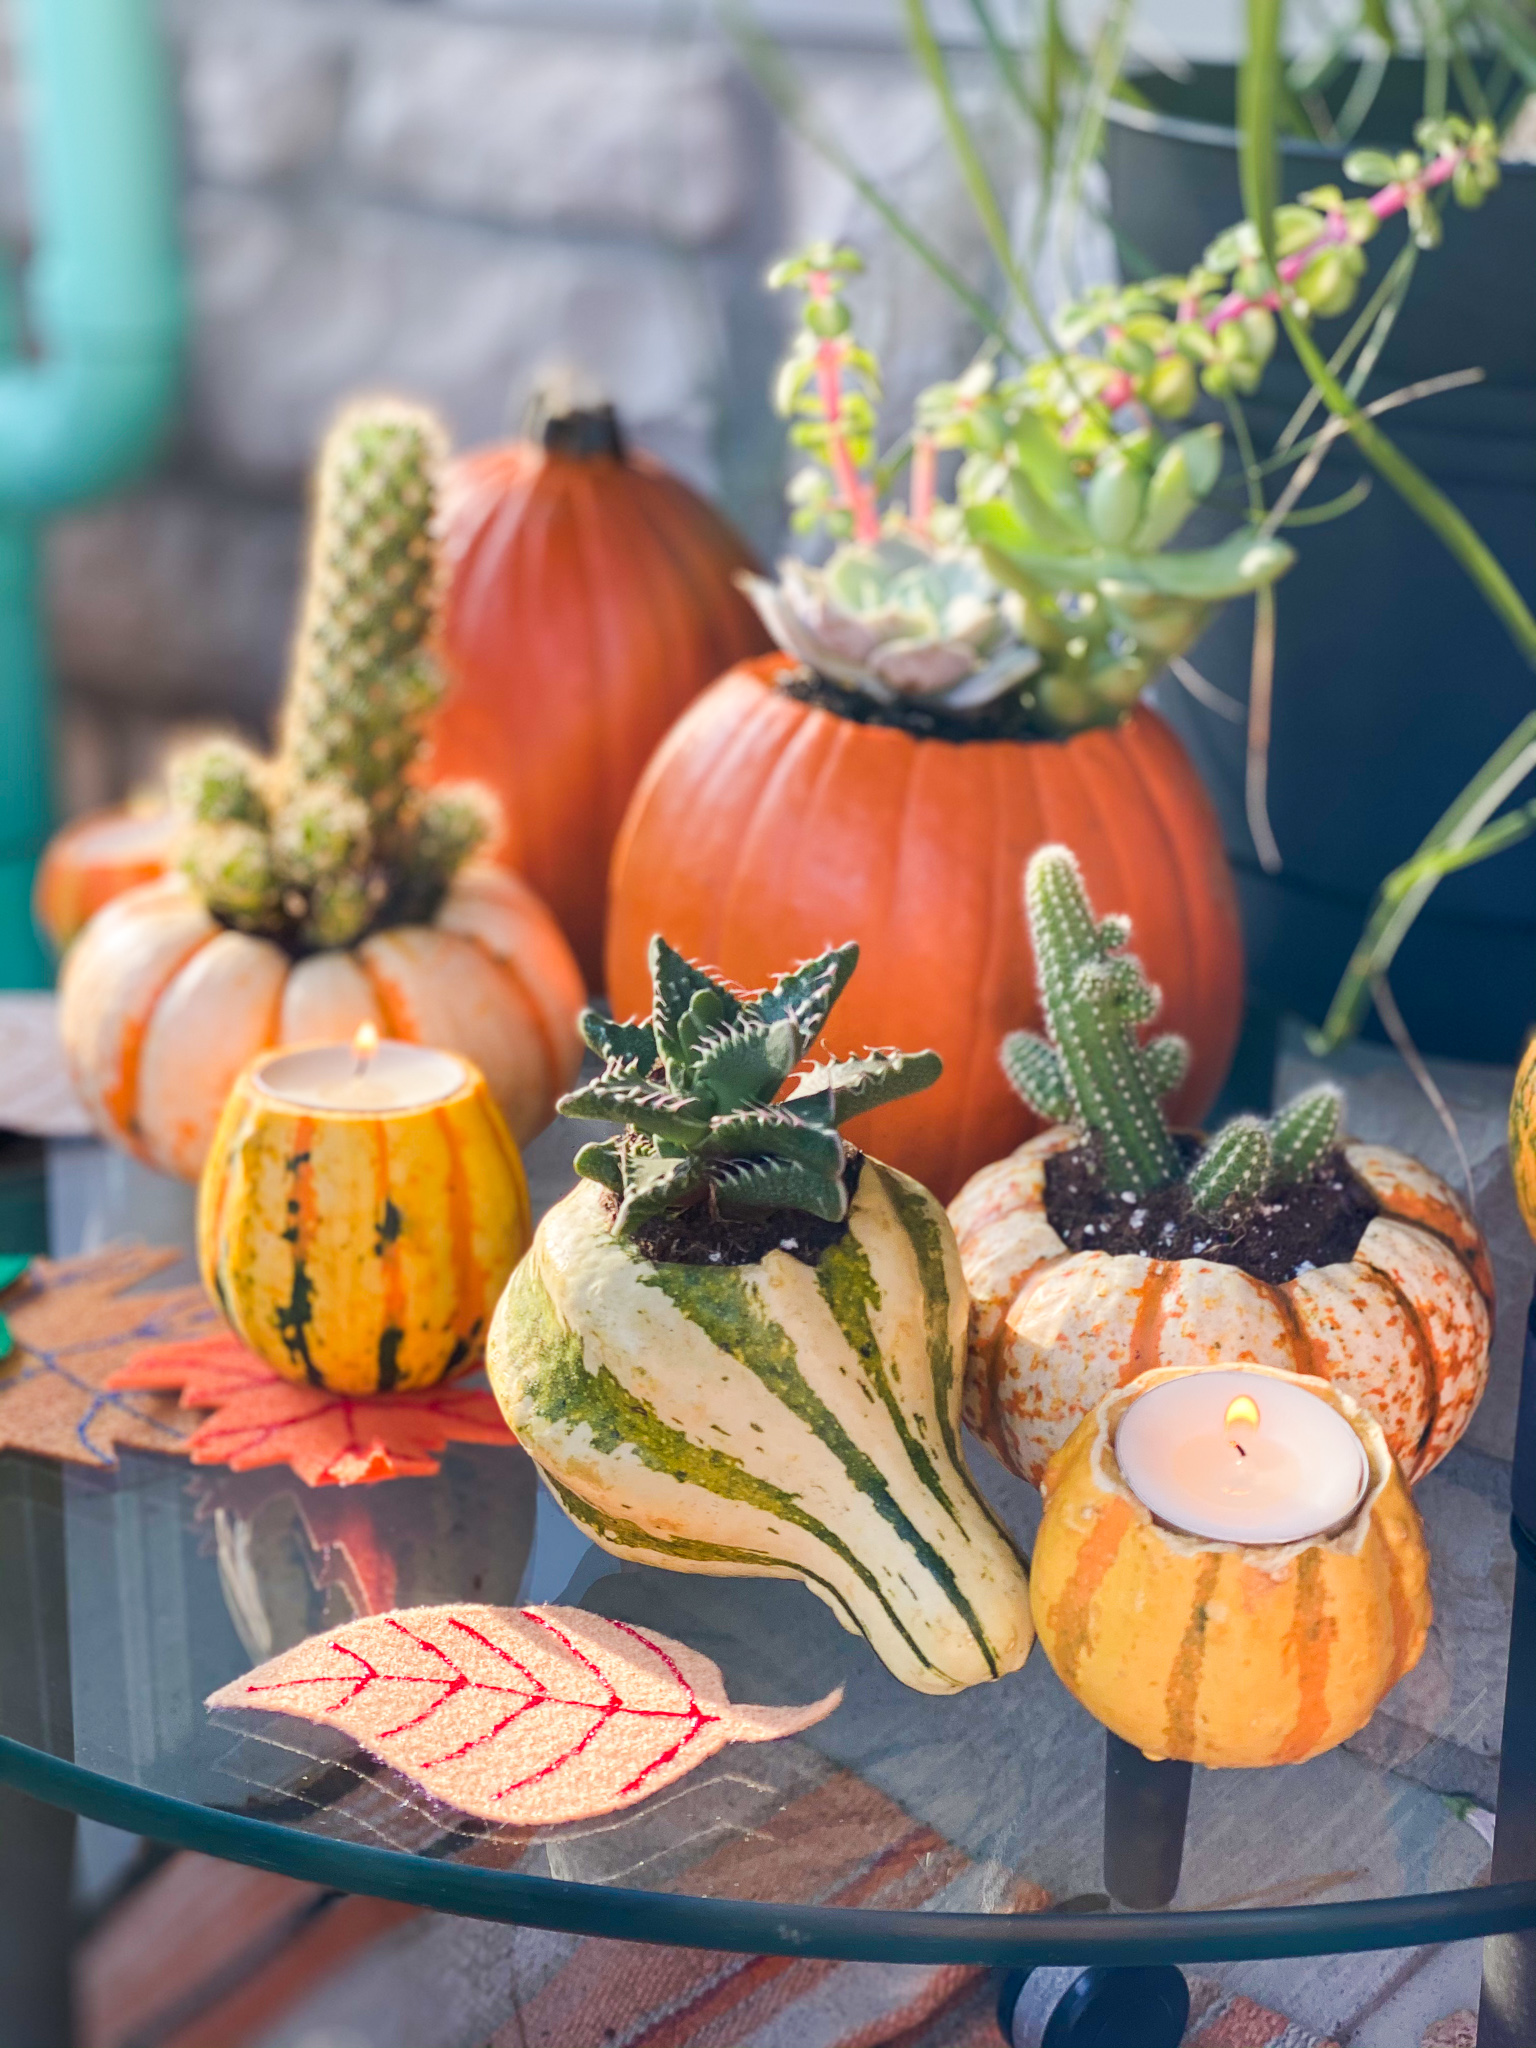 Pumpkin & Gourd Crafts with Megan Pando on Good Day Columbus {Fox 28} - 10/11/20